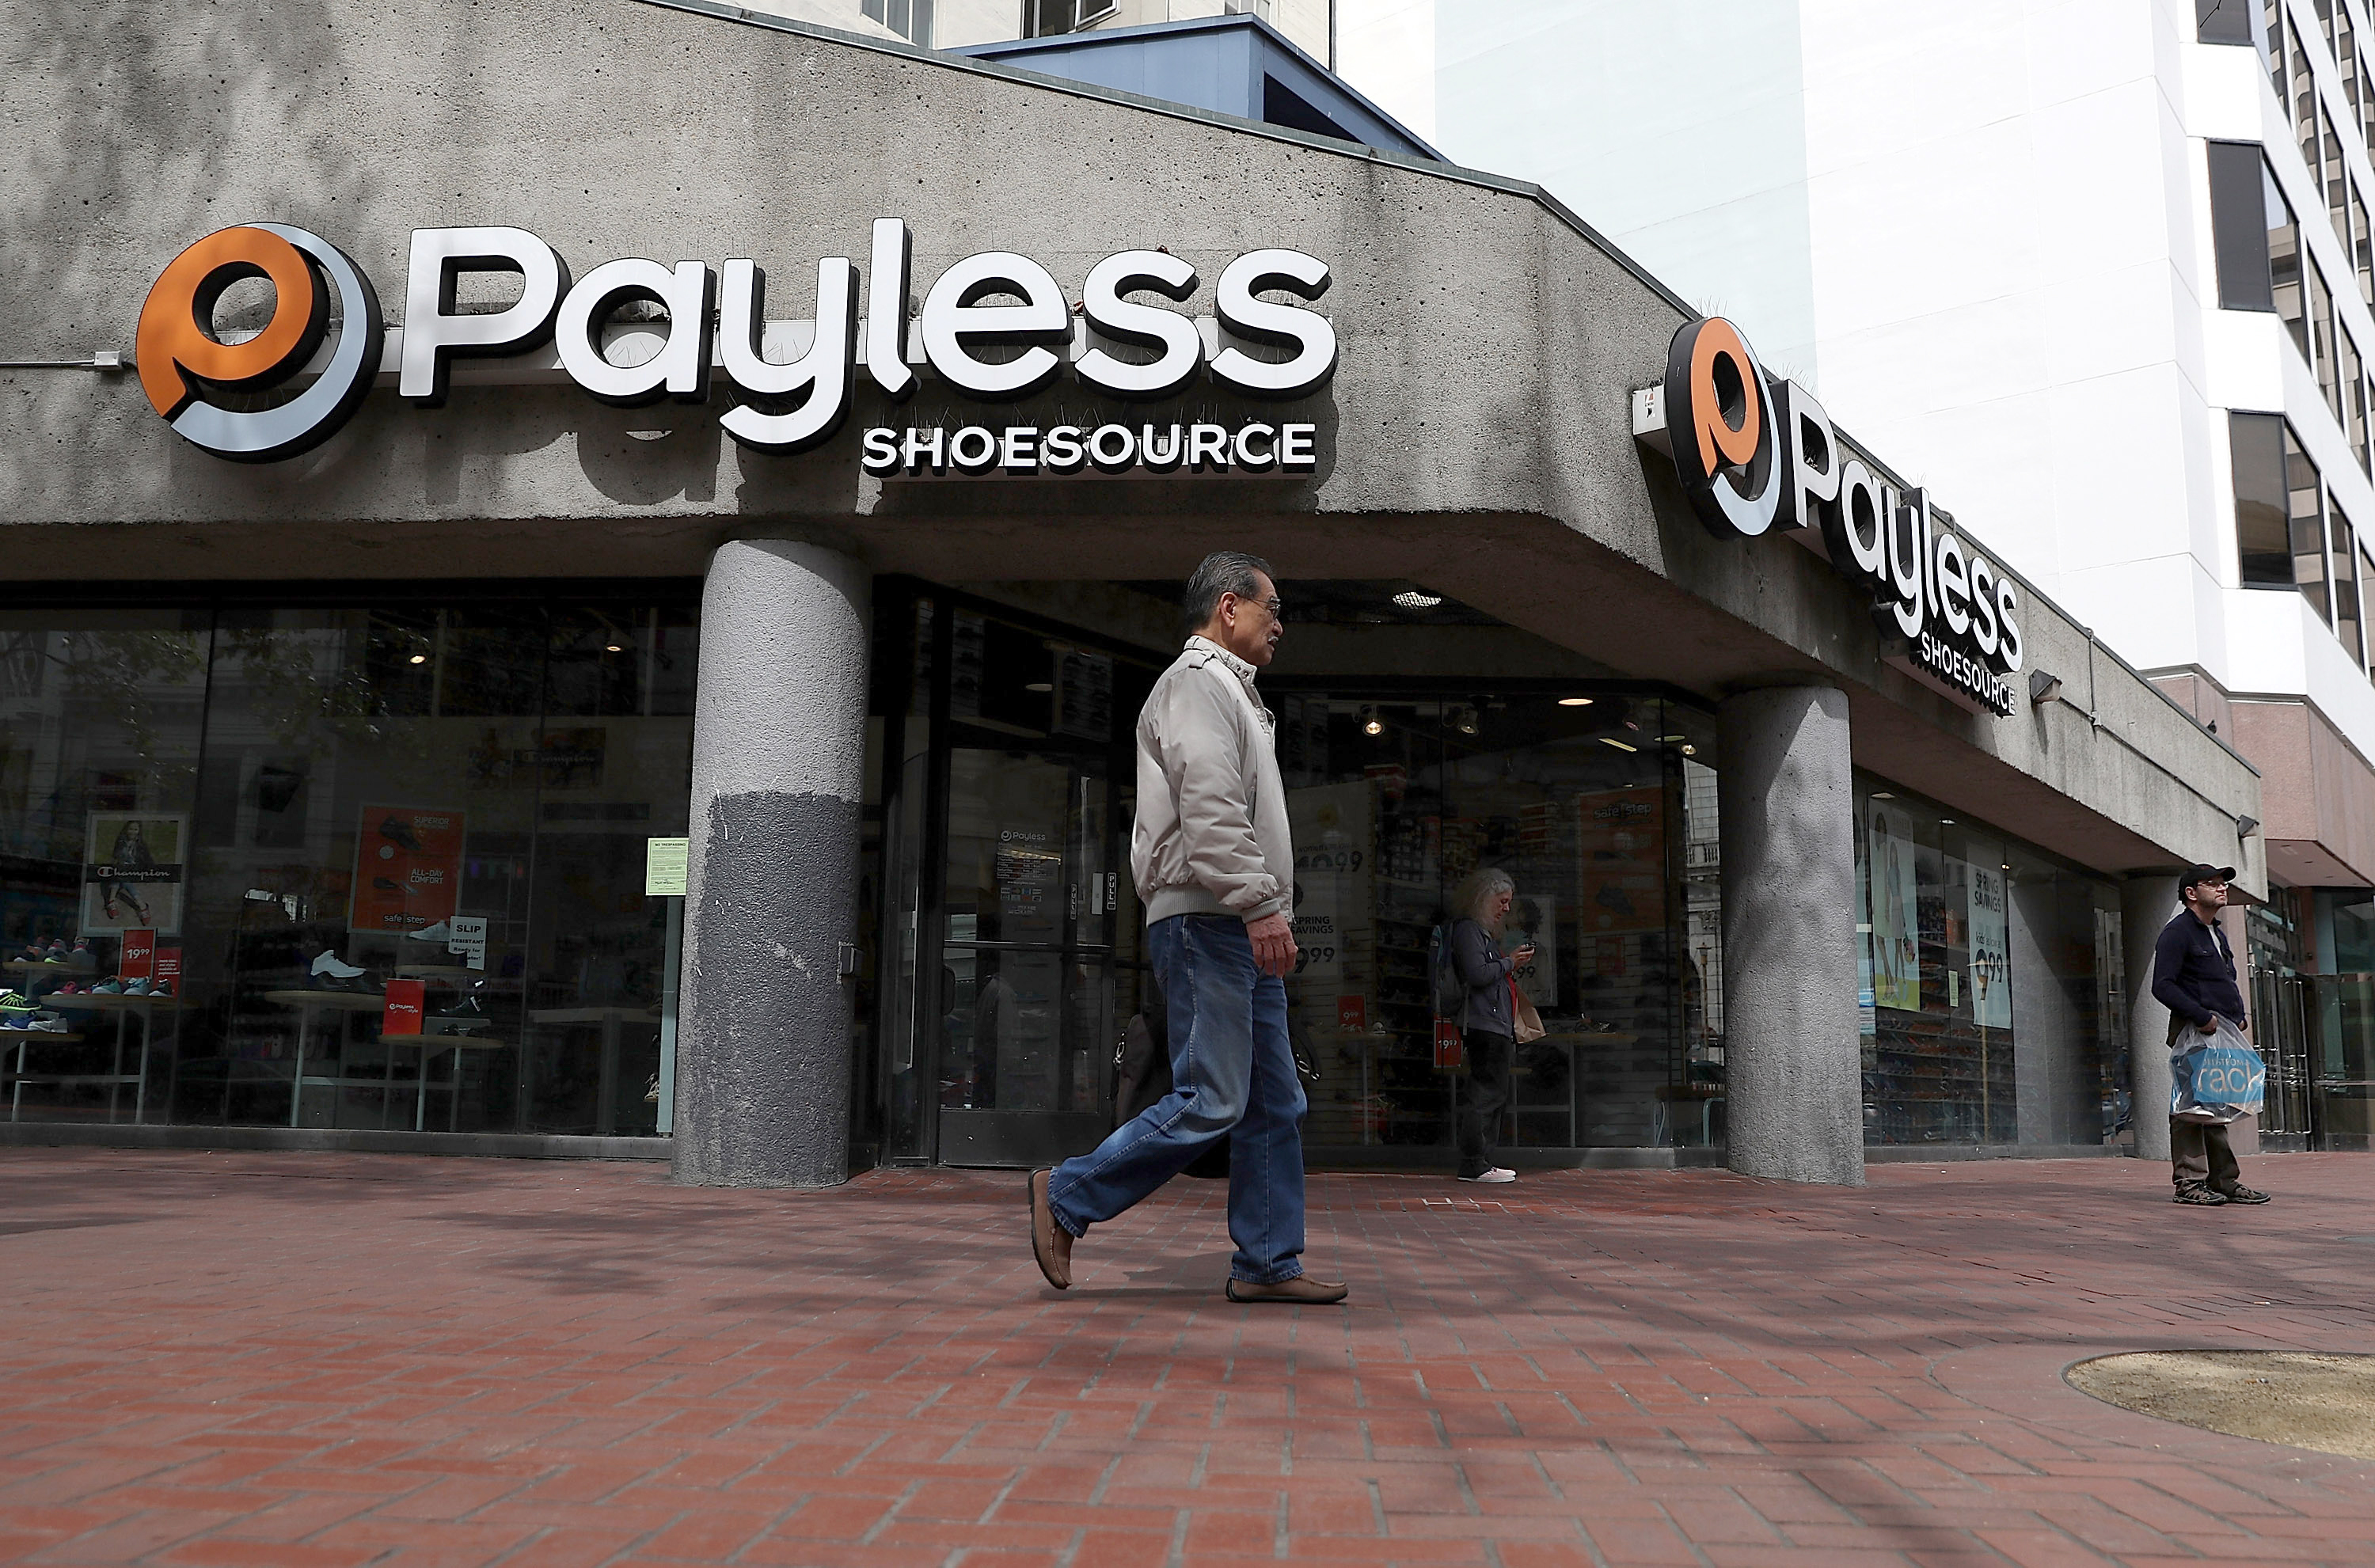 Payless is emerging from bankruptcy. But it's not coming back to the United States anytime soon